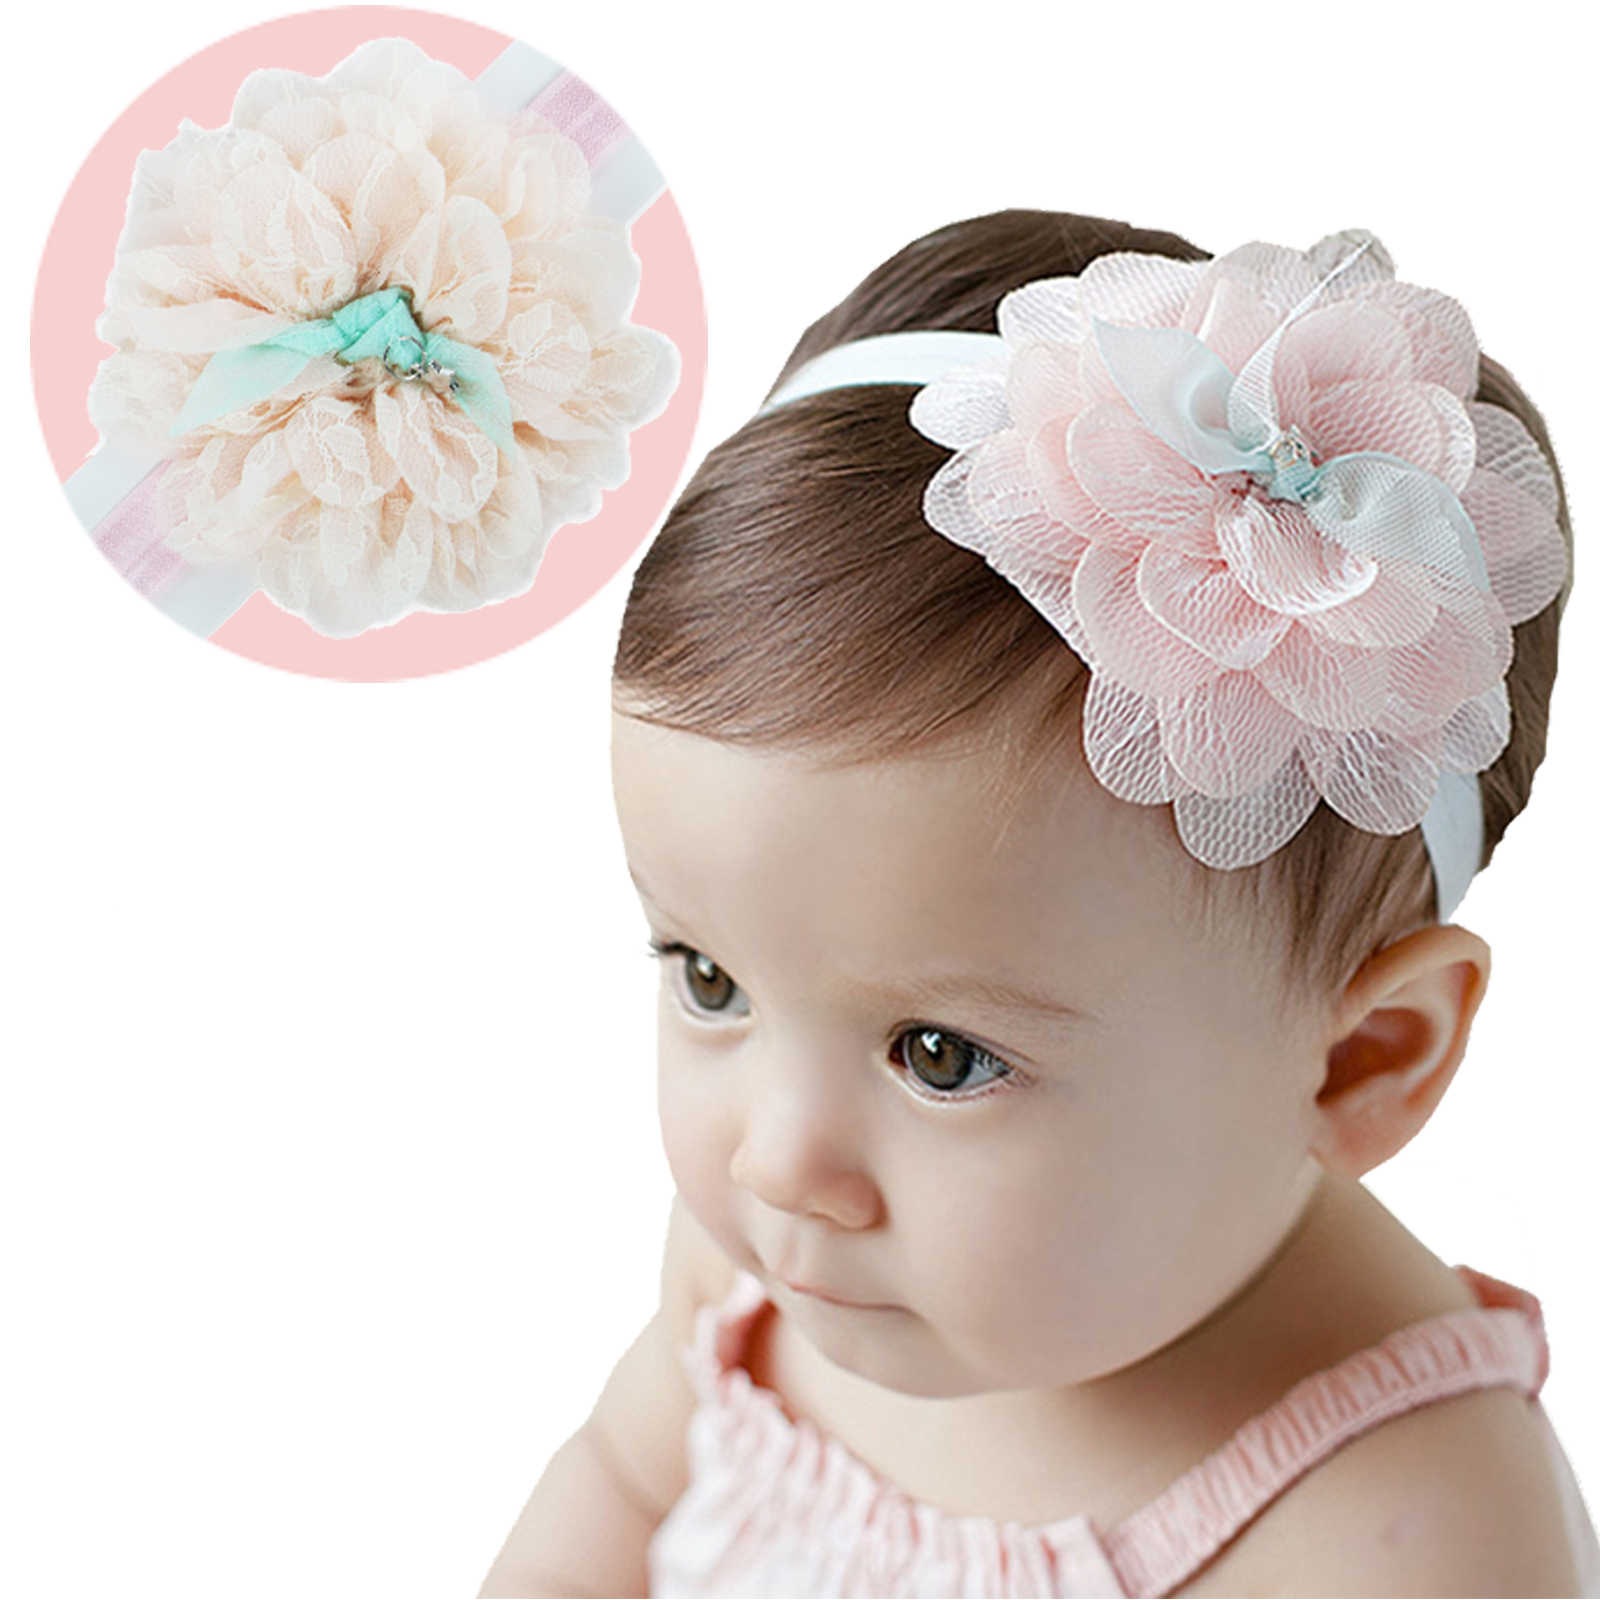 Baby Girl Headband Infant Hair Accessories Clothes Band Floral Headwear Tiara Headwrap Hairband Gift Toddlers Flower